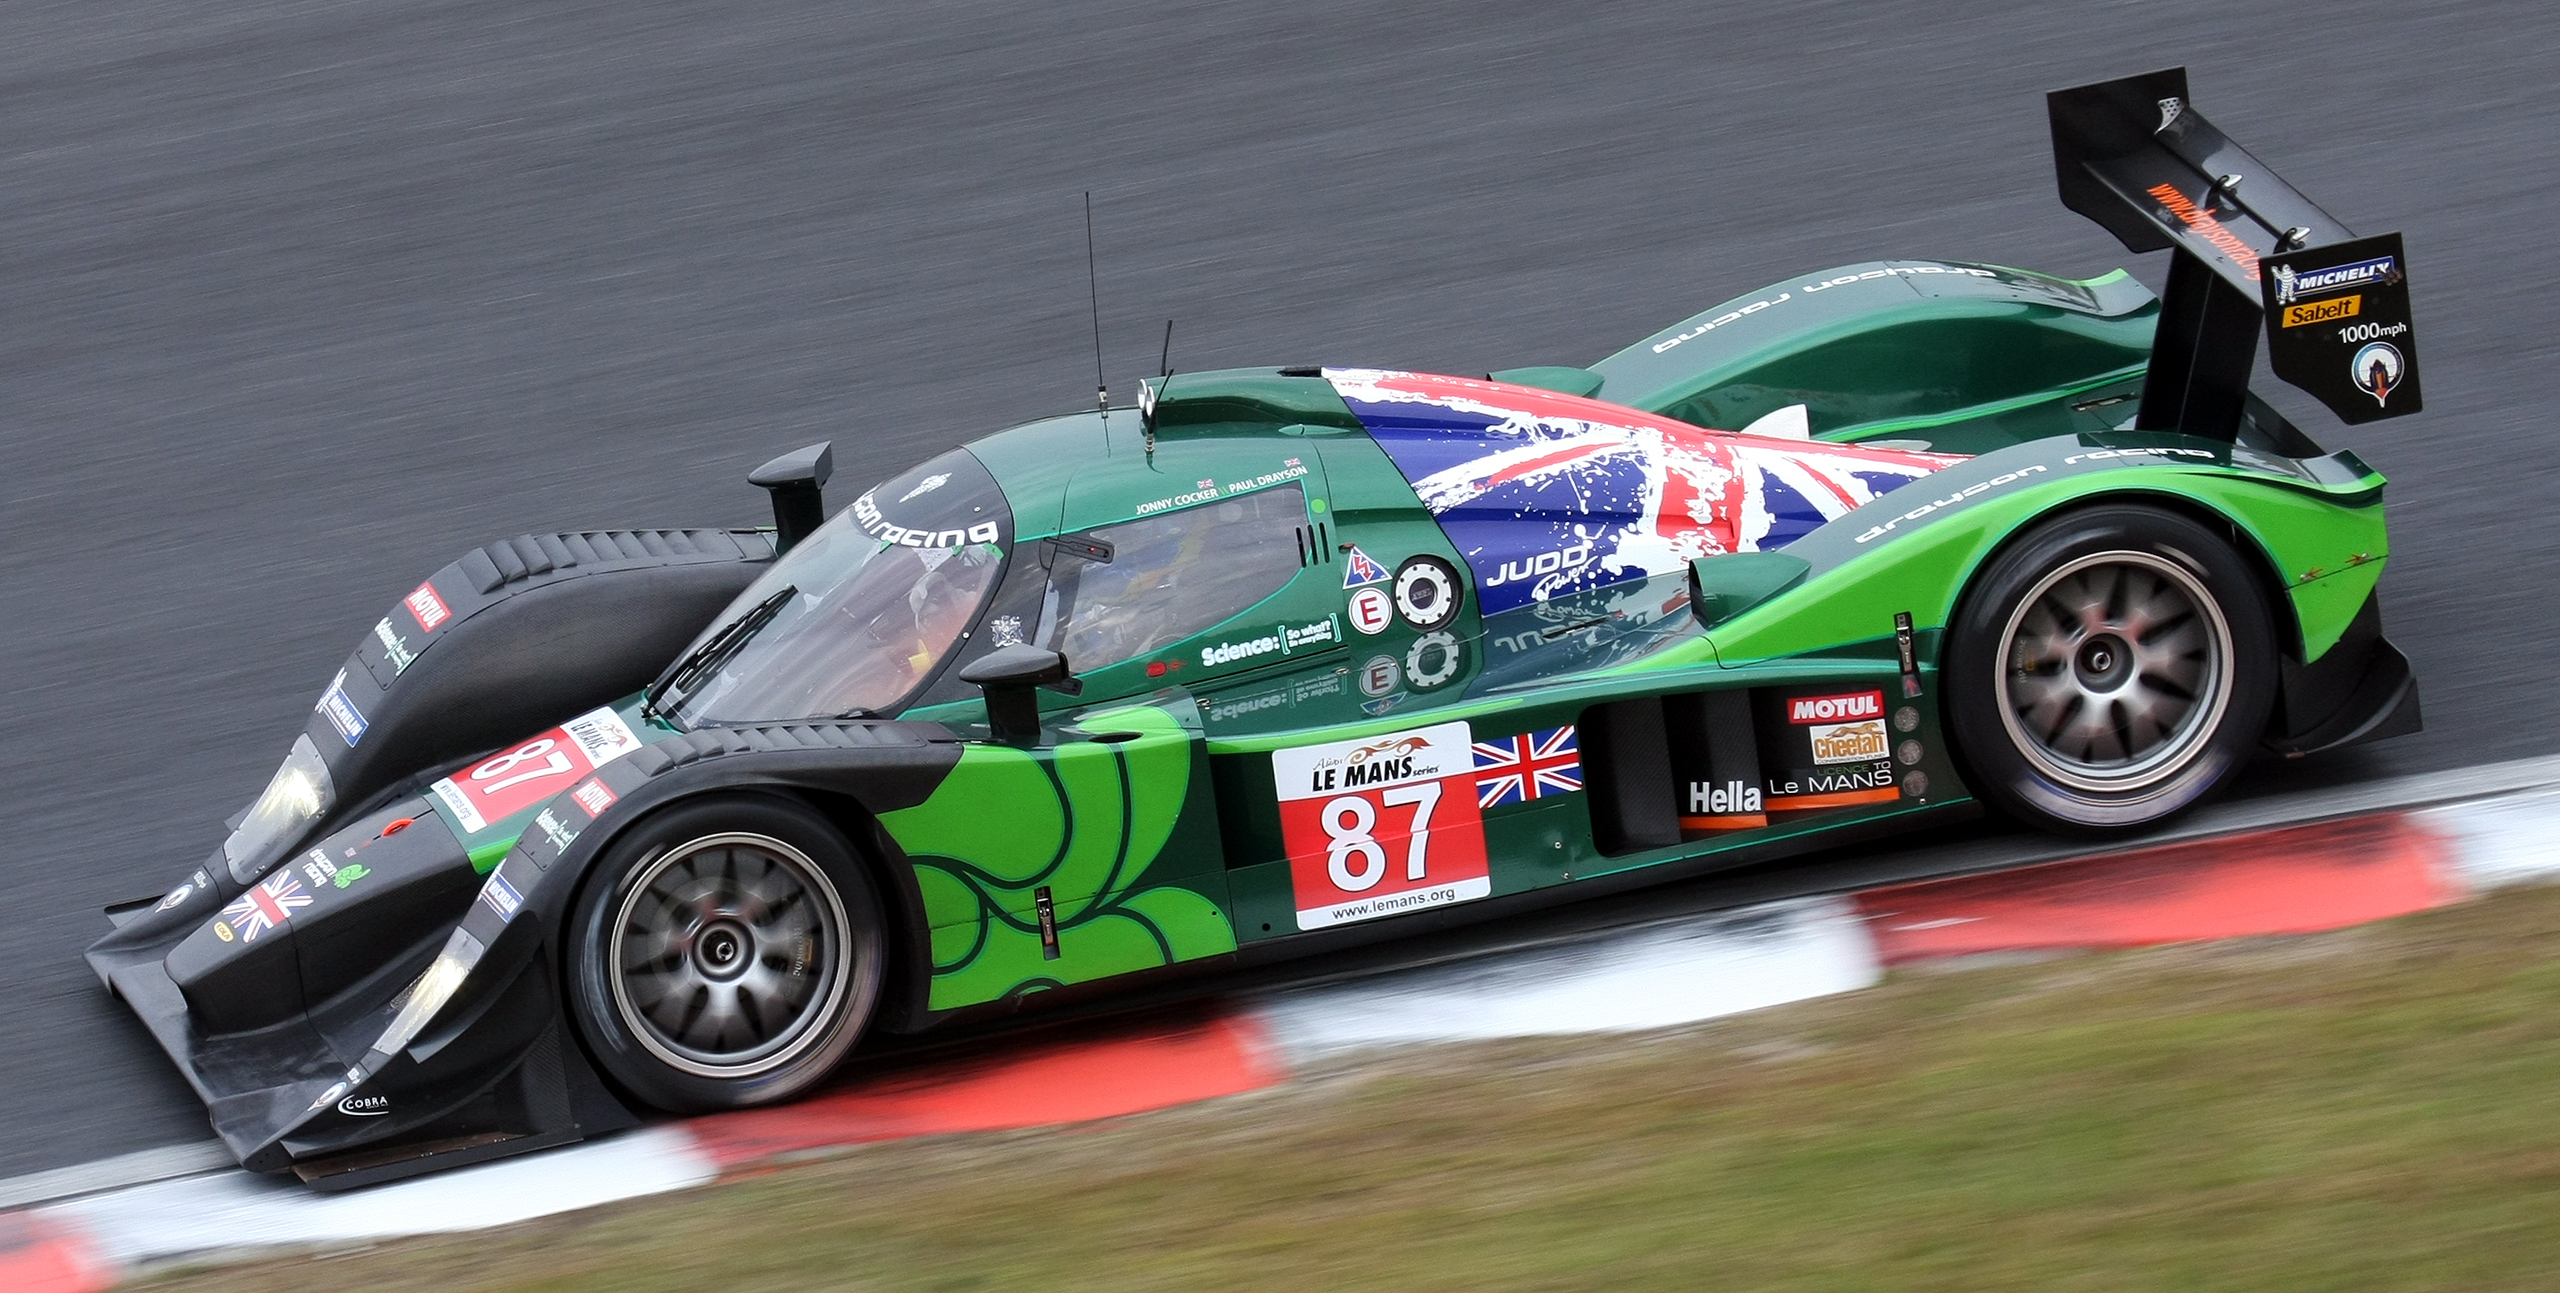 Drayson_Racing_Lola_B09-06_side_2009_1000km_of_Okayama_%28Race_2%29.jpg